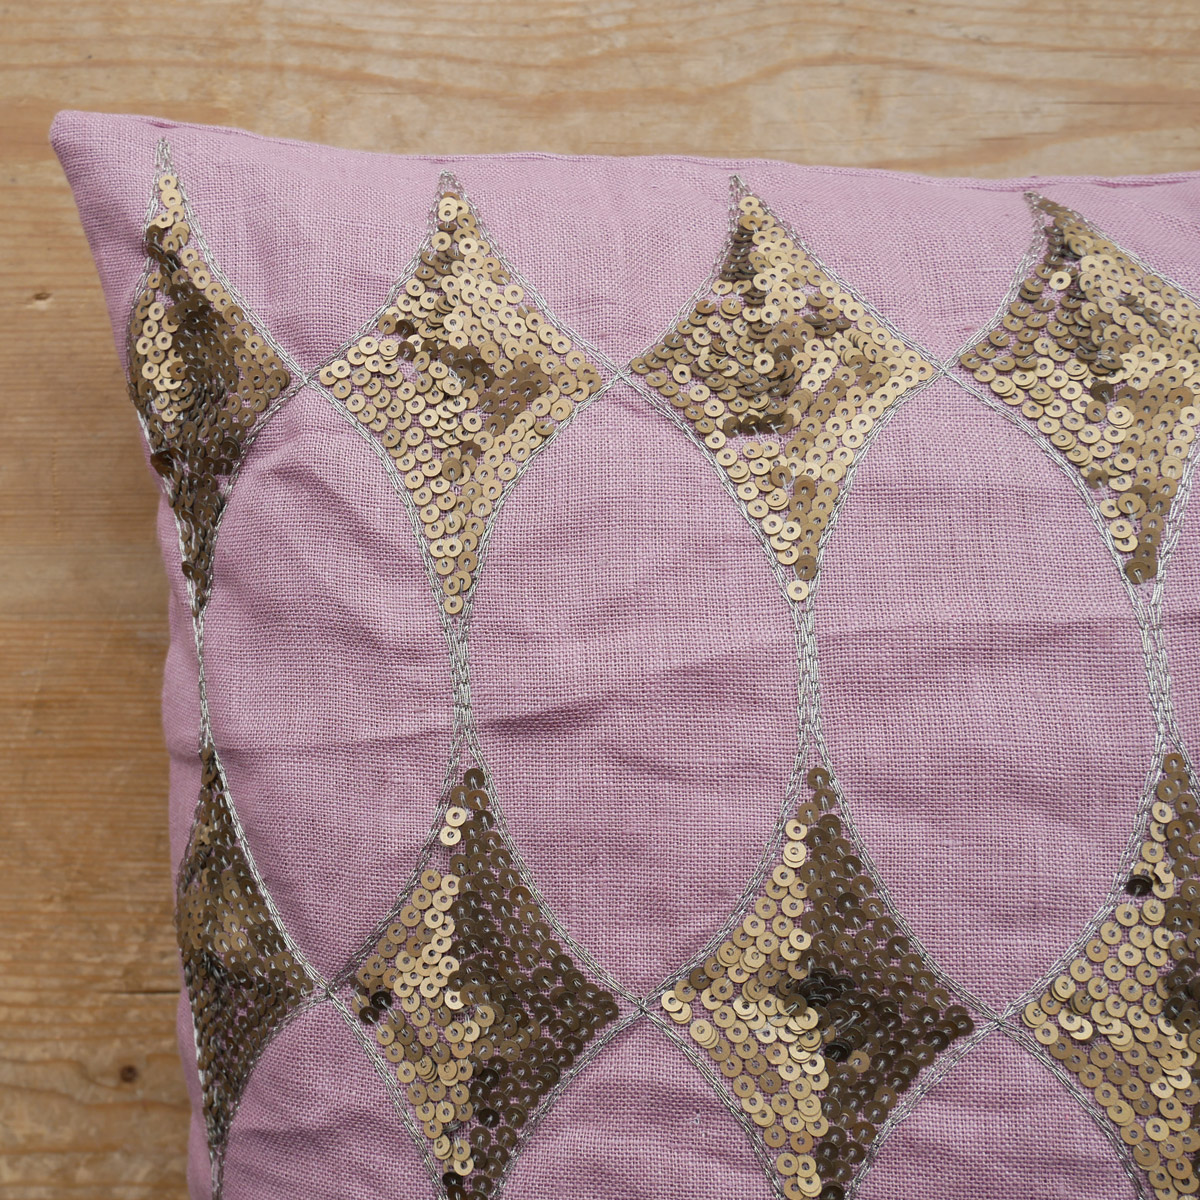 Rose-Sequin-Cushion-on-wood-lifestyle-image